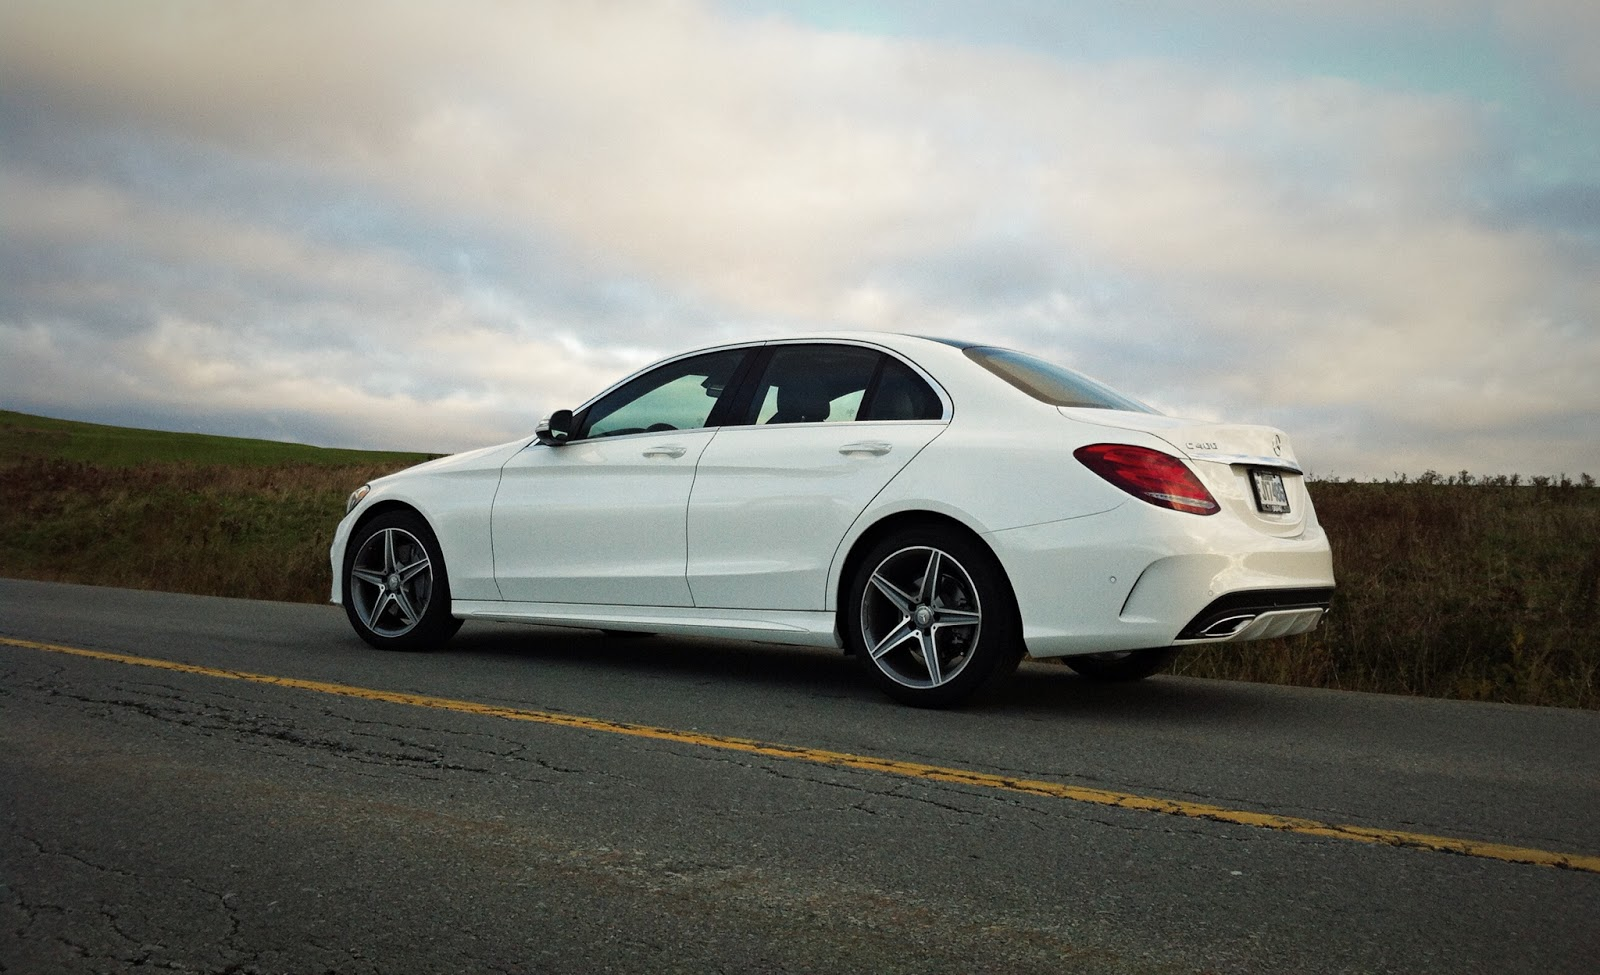 2015 mercedes benz c400 4matic review an actual luxury for 2015 mercedes benz c400